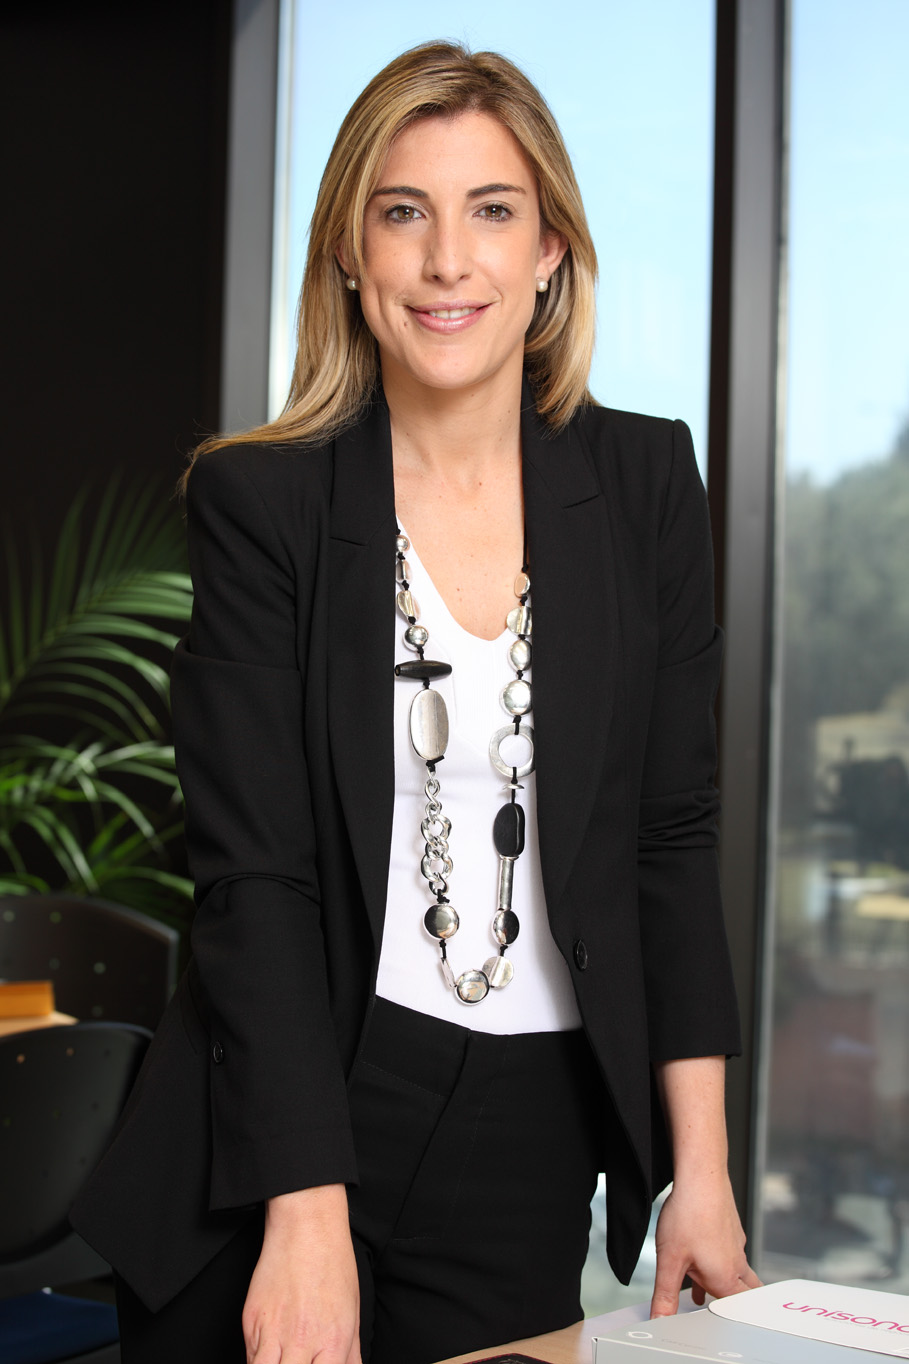 María Sola Lasso, new Commercial and Marketing Director of Unisono